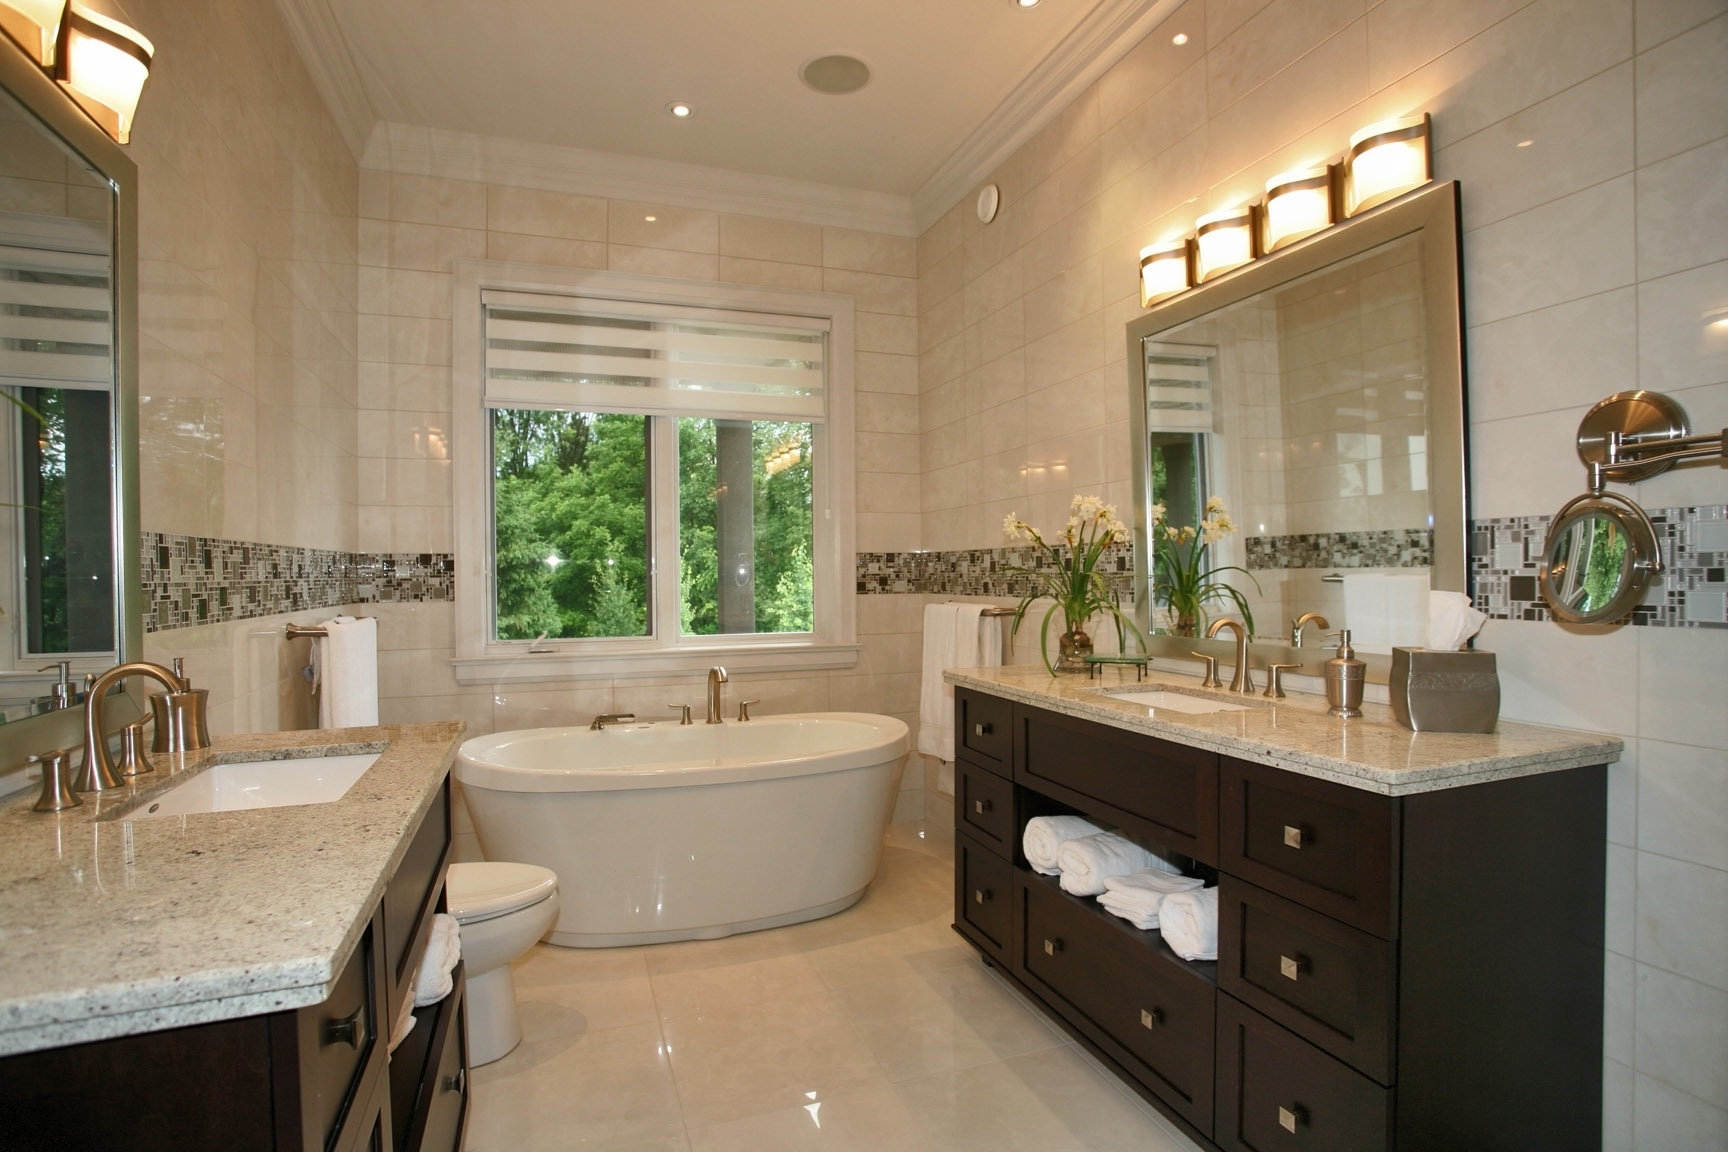 Luxurious Bathroom Design With Ceramic Tile (Image 3 of 8)